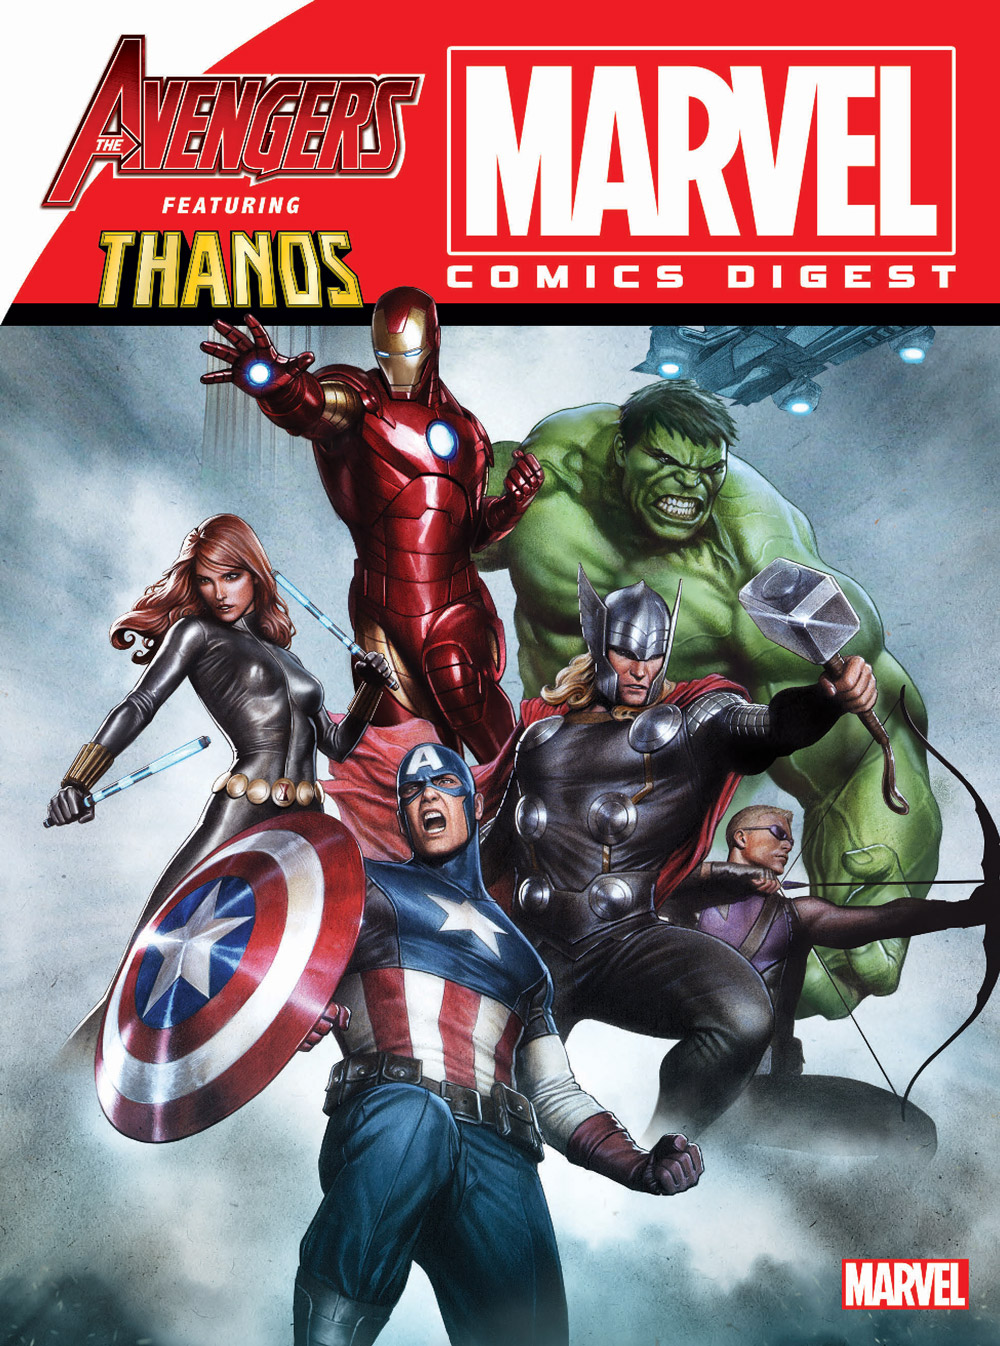 MARVEL COMICS DIGEST #6 AVENGERS VS. THANOS